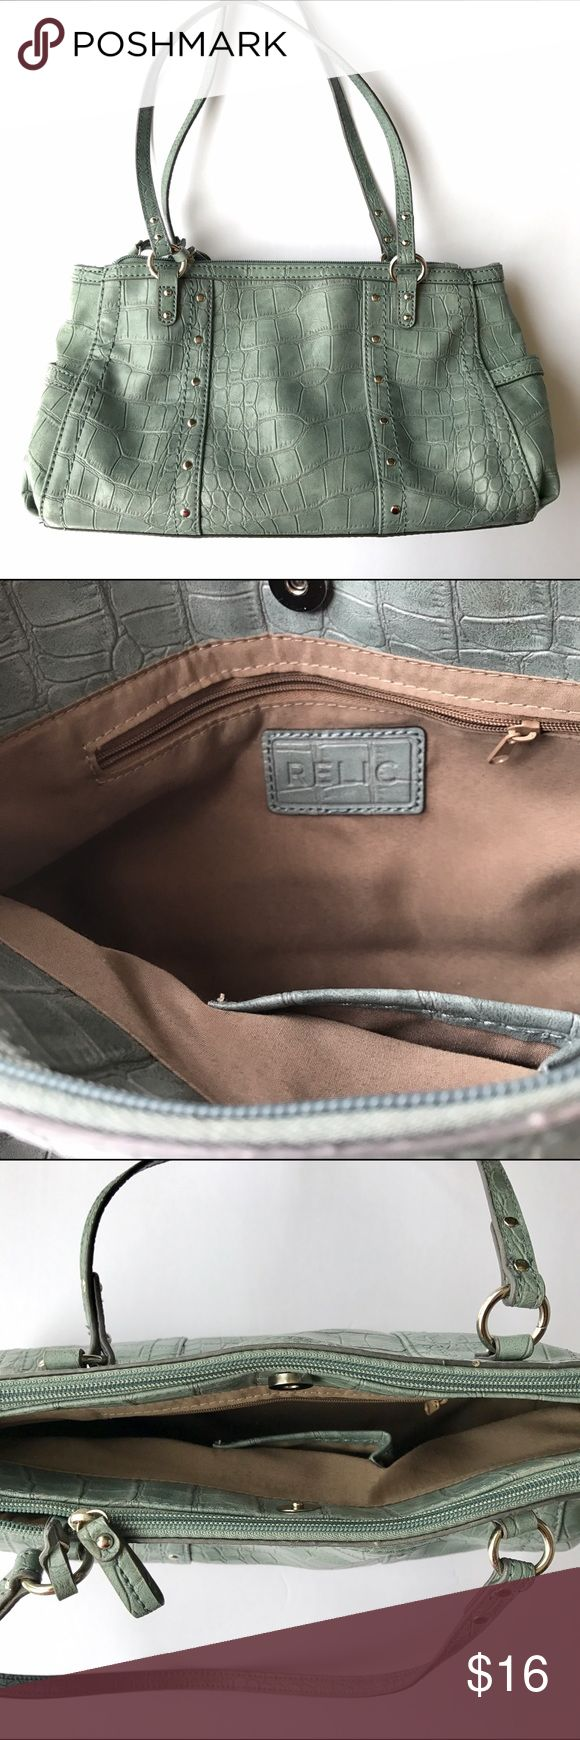 Relic elegant textured purse A lovely shoulder bag with several pockets inside and outside. The color is a pastel green blue - I would describe it as mint colored. Crocodile style texture on the outside. Lined inside with many compartments. Stylish purse for everyday use. Relic Bags Shoulder Bags